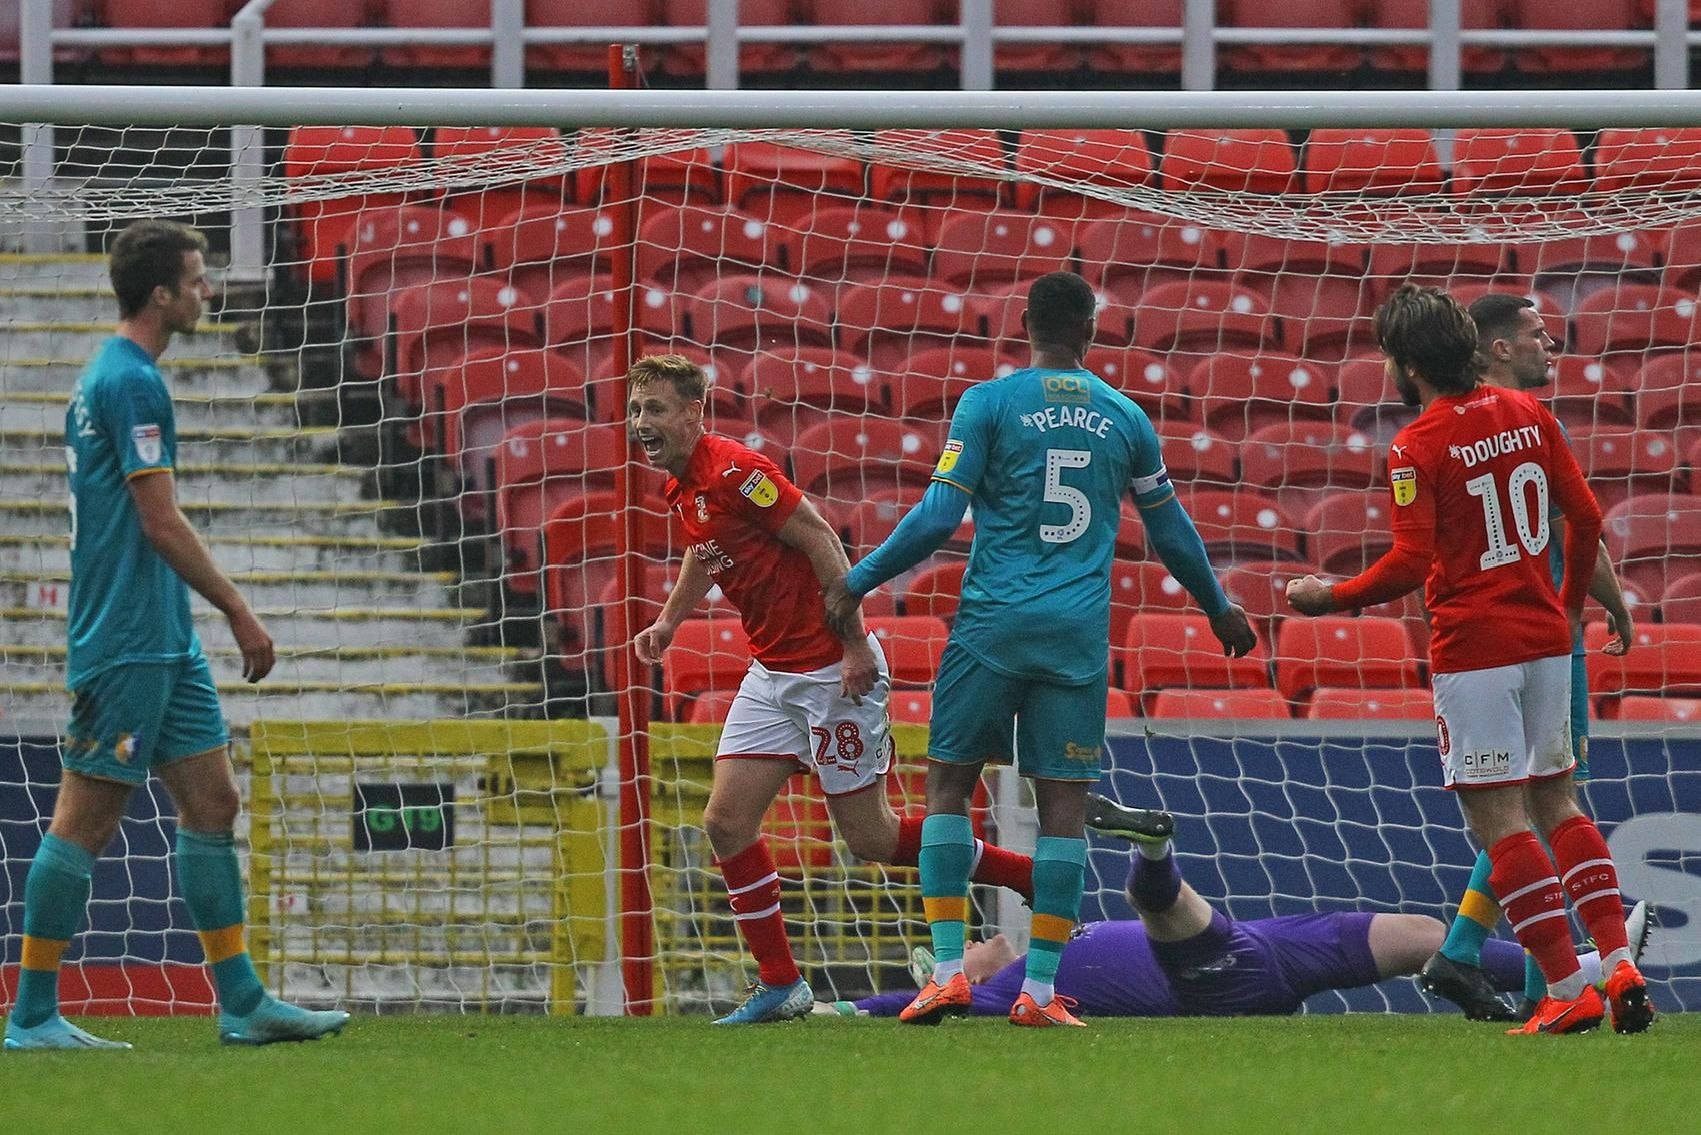 Eoin Doyle celebrates after giving Swindon the lead against Mansfield.